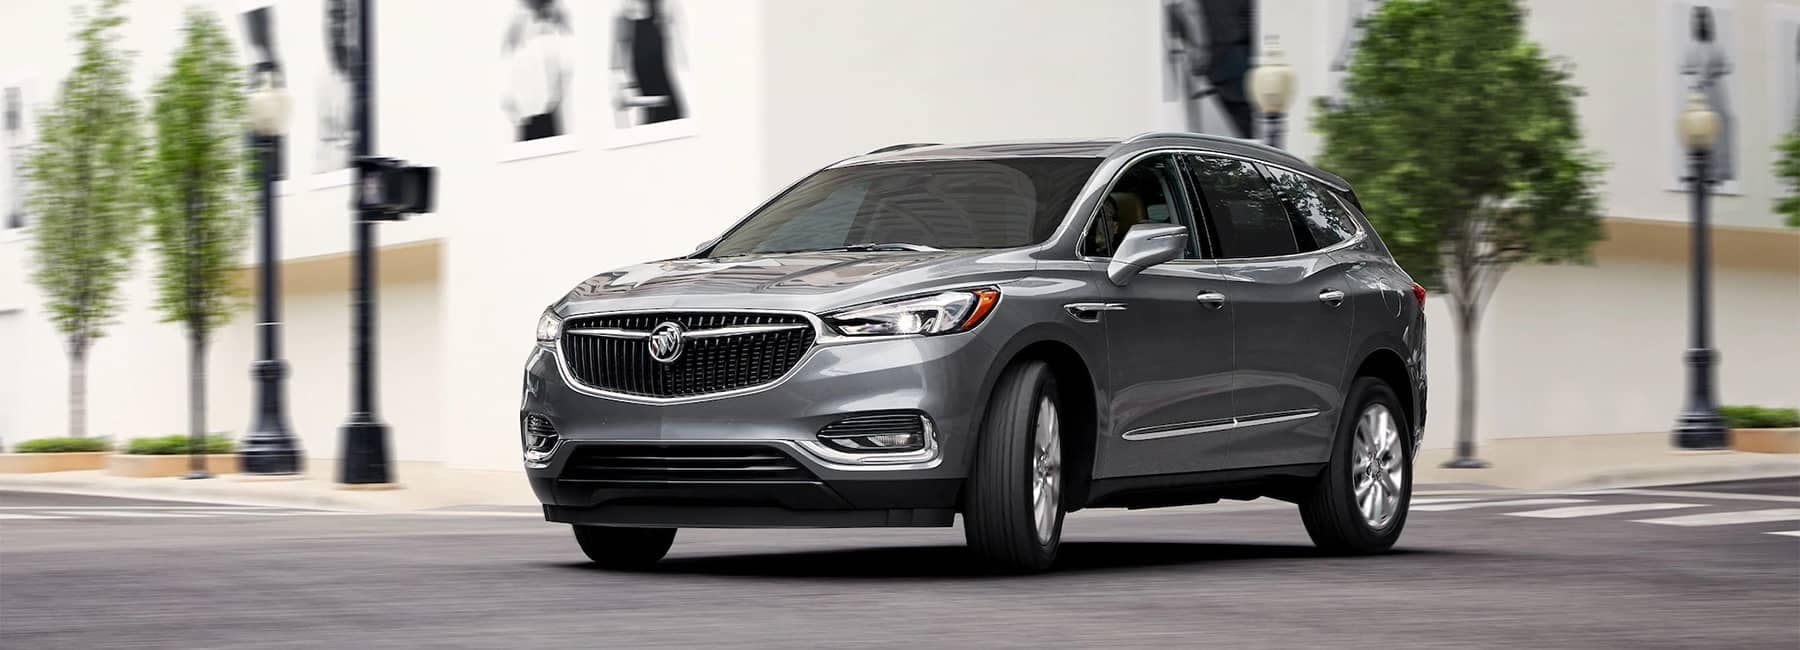 2020 Buick Enclave Avenir mid-size luxury SUV Driving